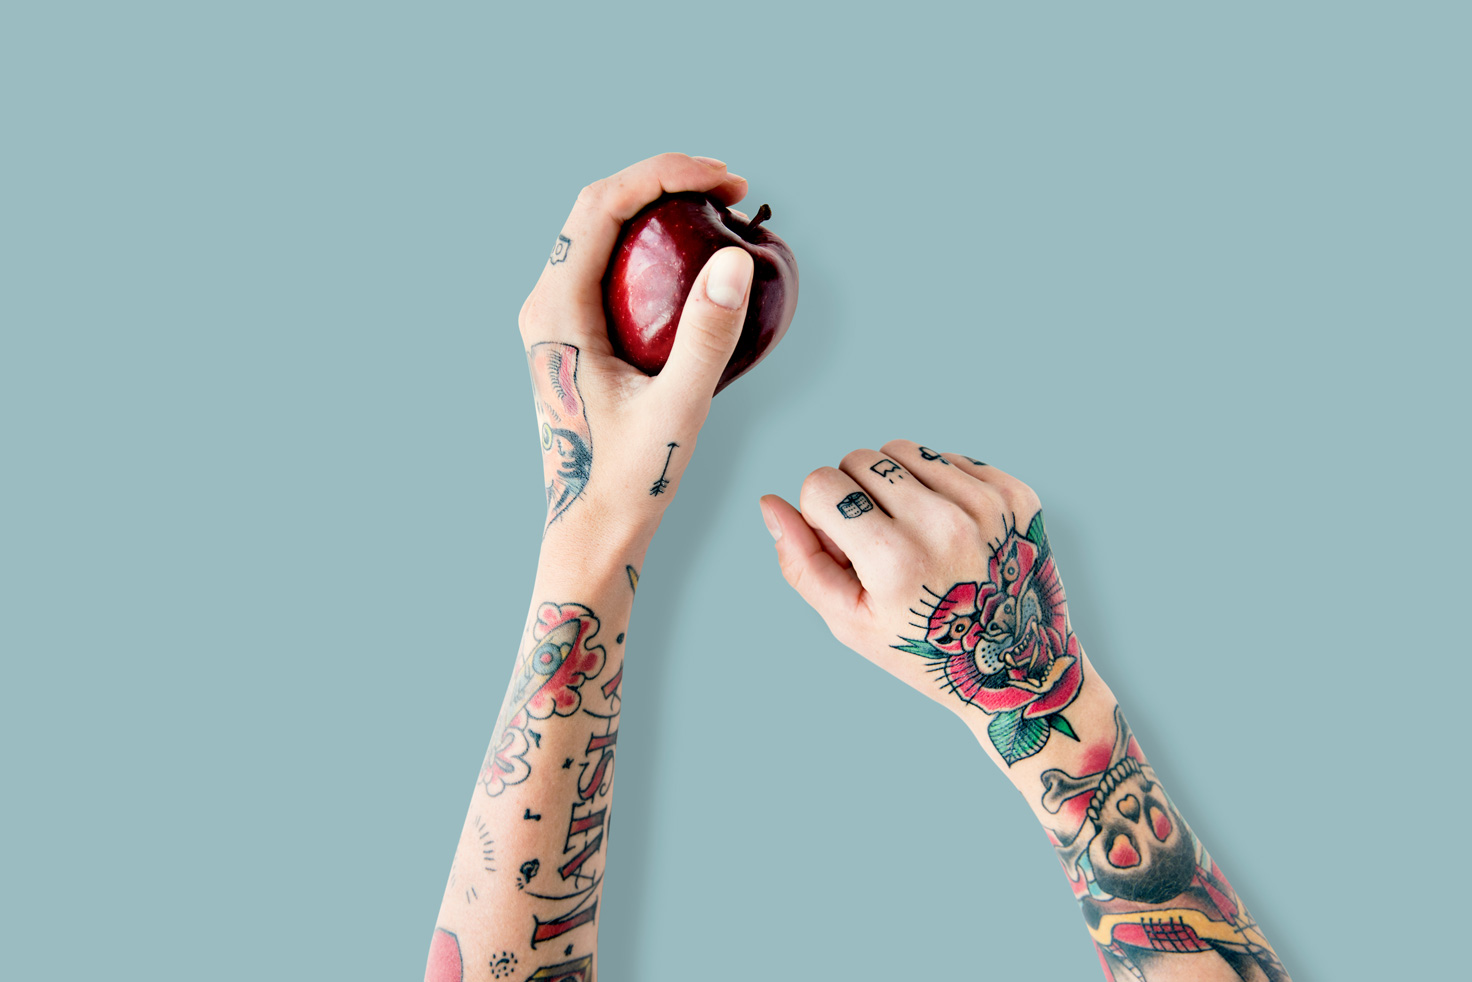 Two hands with tattoos holding an apple.